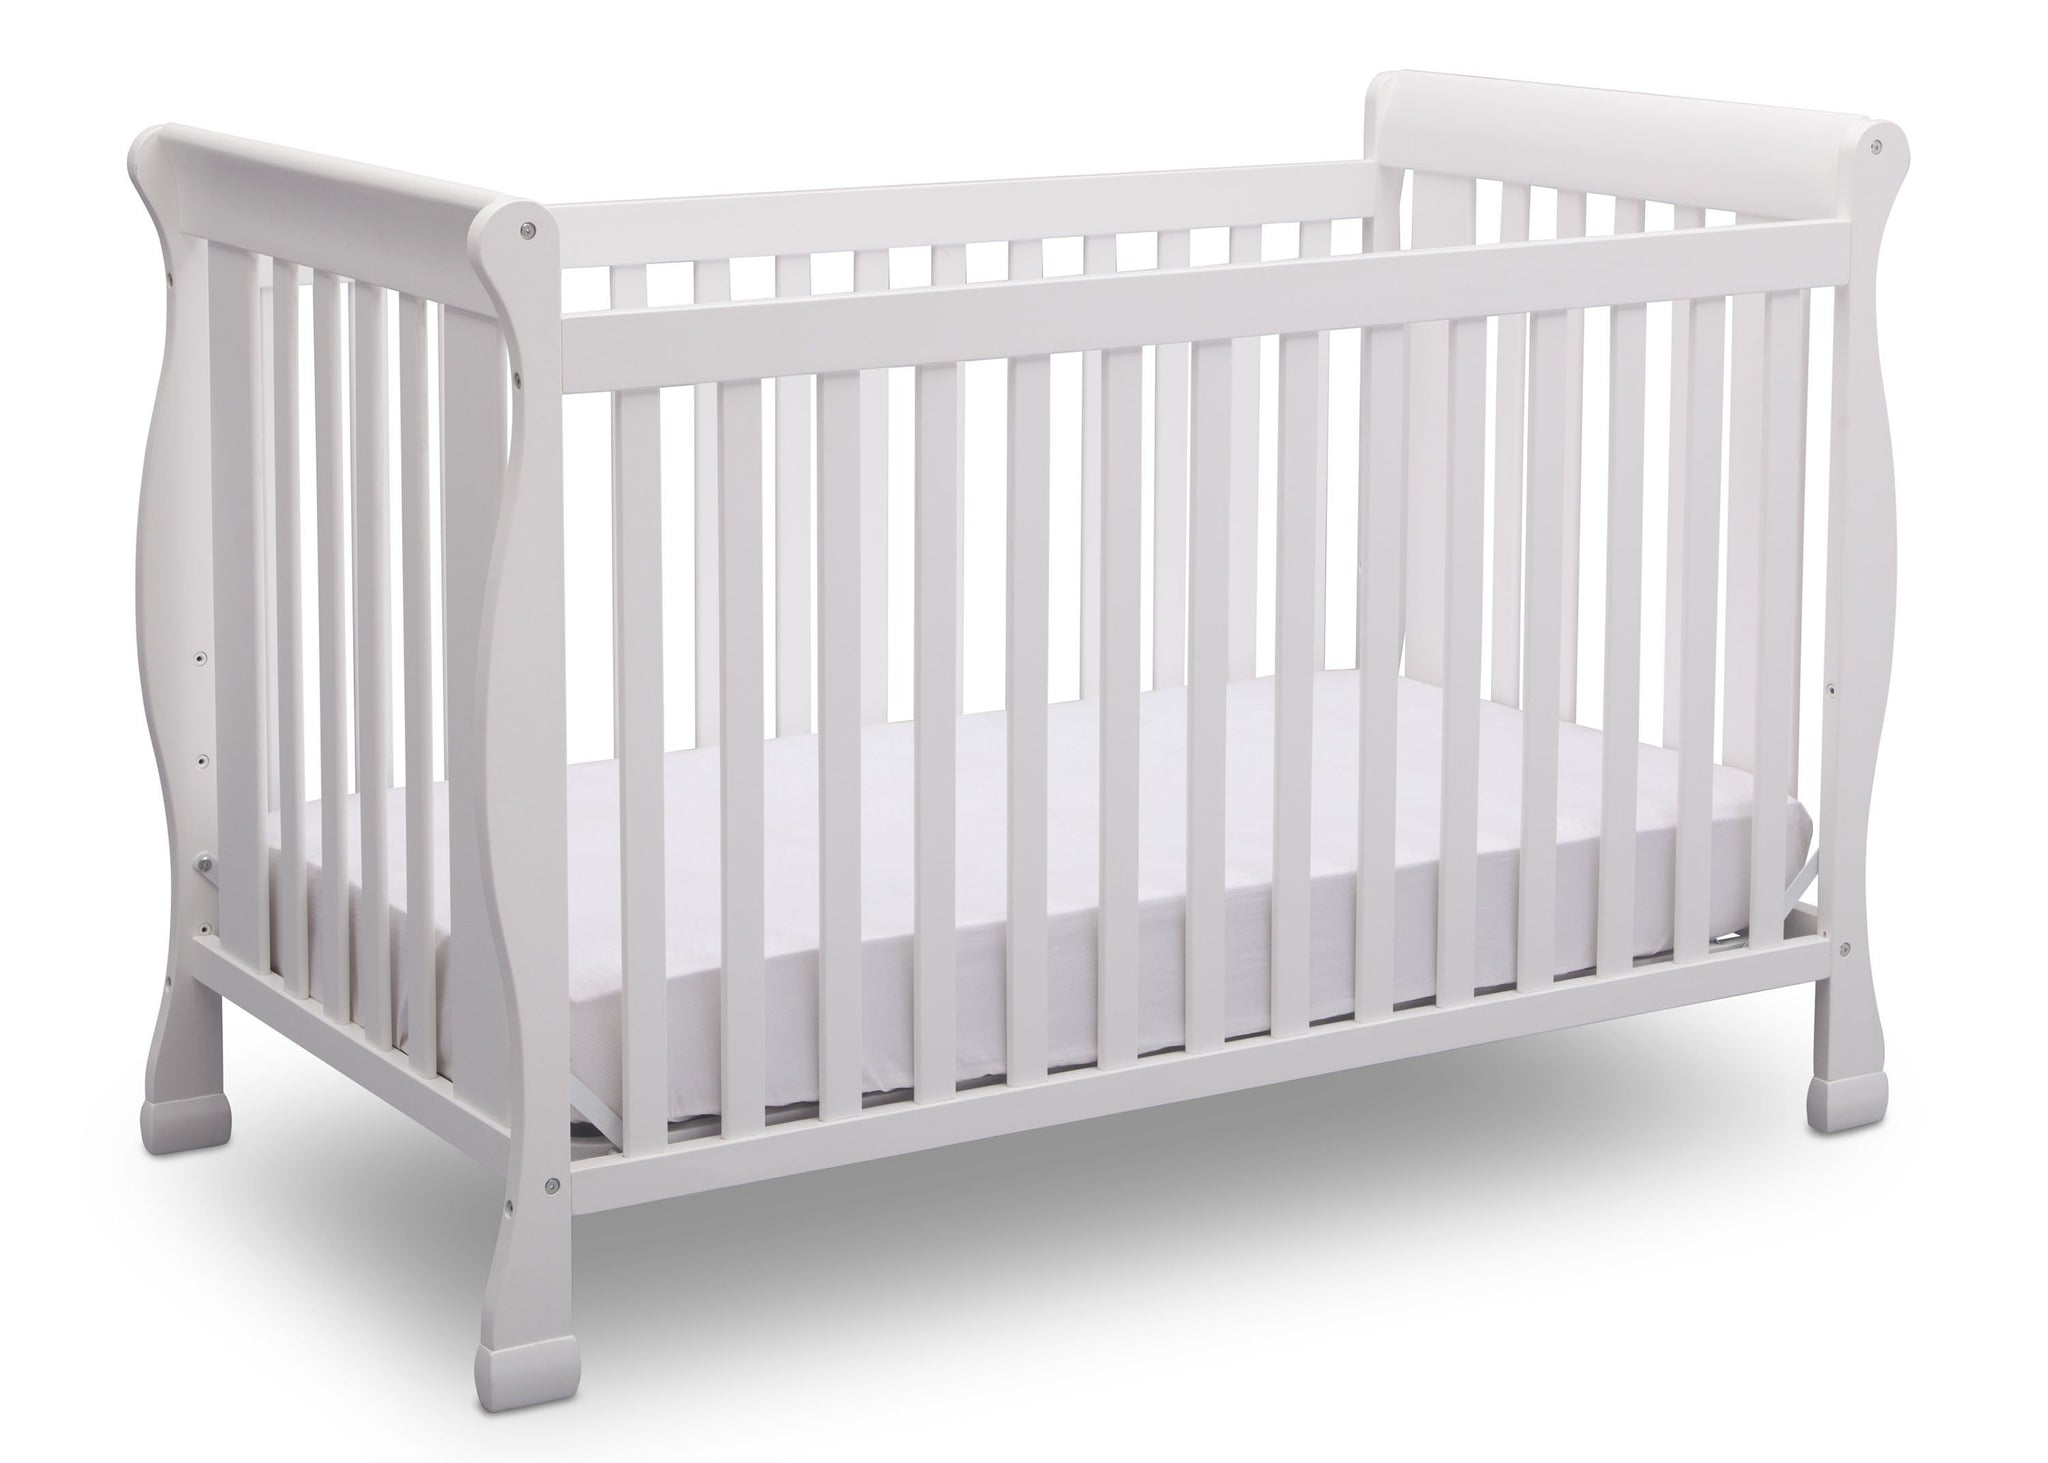 Delta Children Bianca (130) Riverside 4-in-1 Crib, angled view, a3a